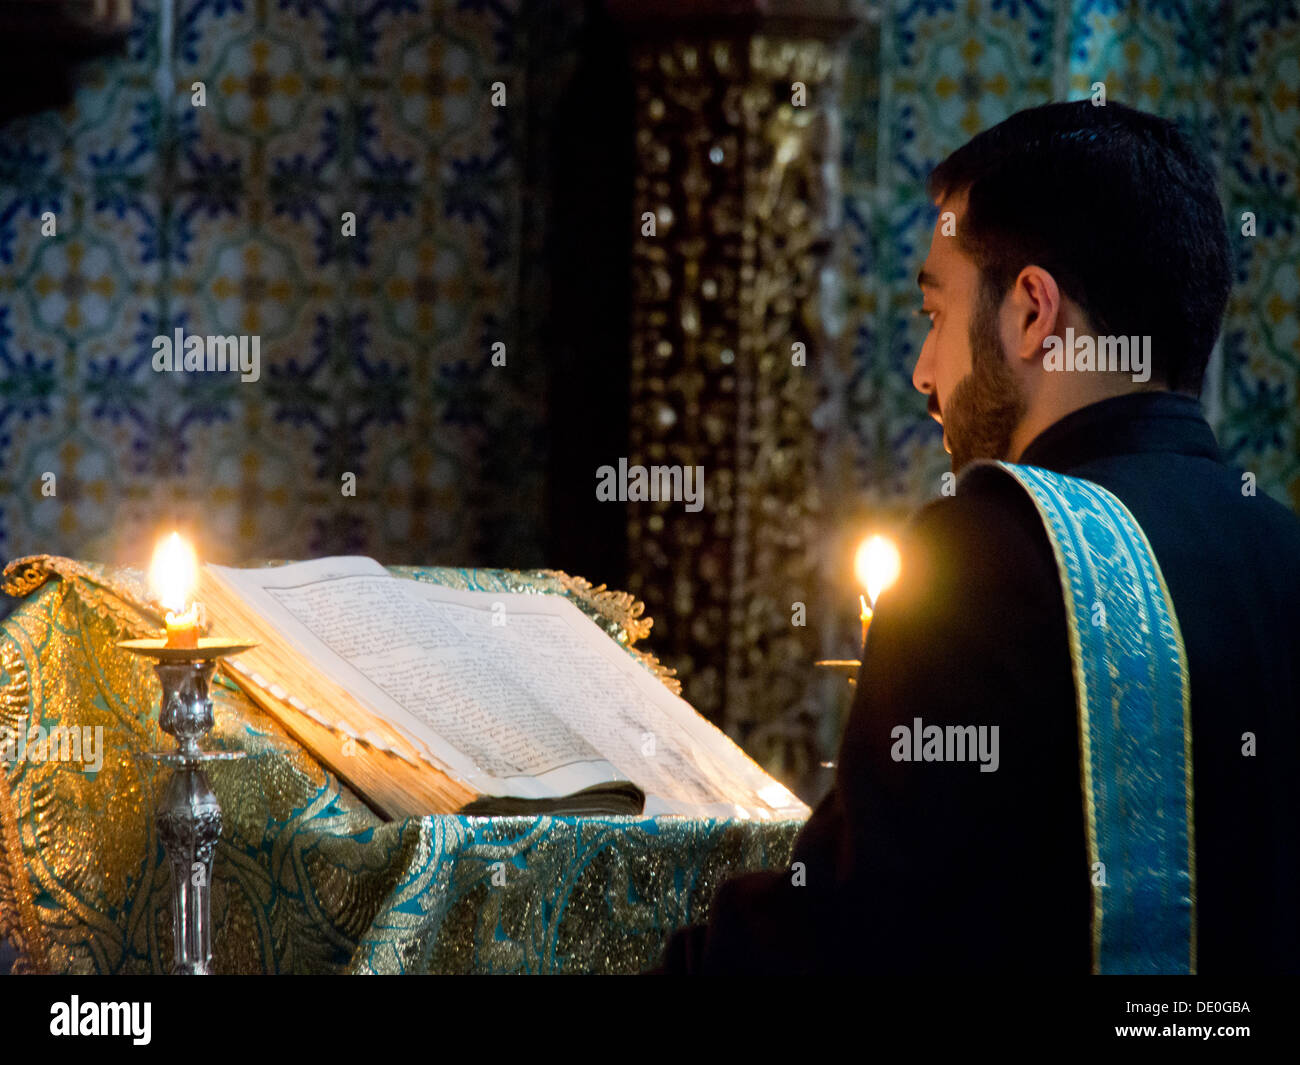 A priesthood trainee leads vespers at the Armenian Cathedral of St. James in Jerusalem. Although legislation describes Israel as a 'Jewish' state it also provides for freedom of worship which is respected in practice. - Stock Image